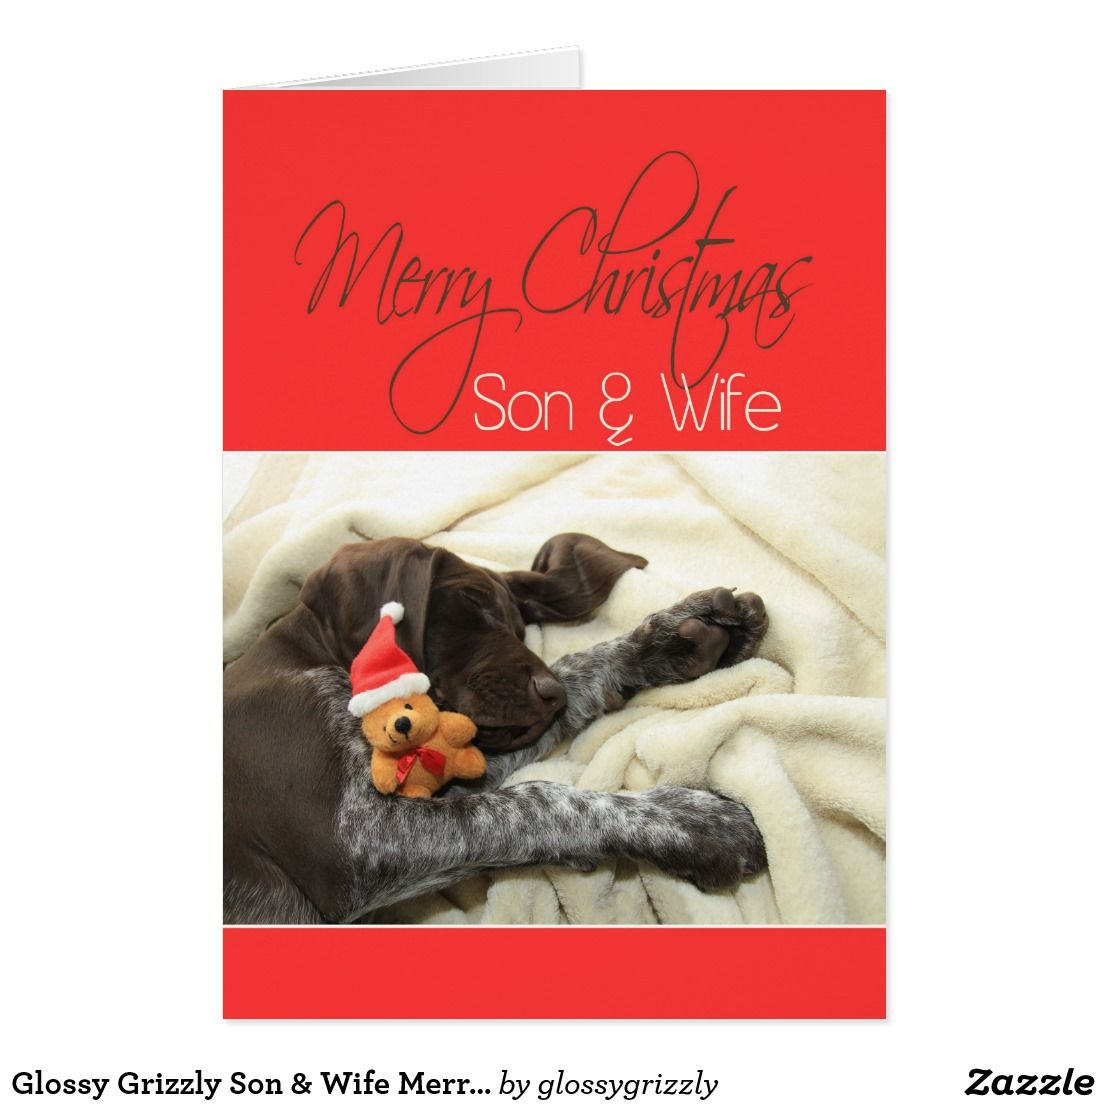 Glossy grizzly son wife merry christmas card stuff sold on glossy grizzly son wife merry christmas card m4hsunfo